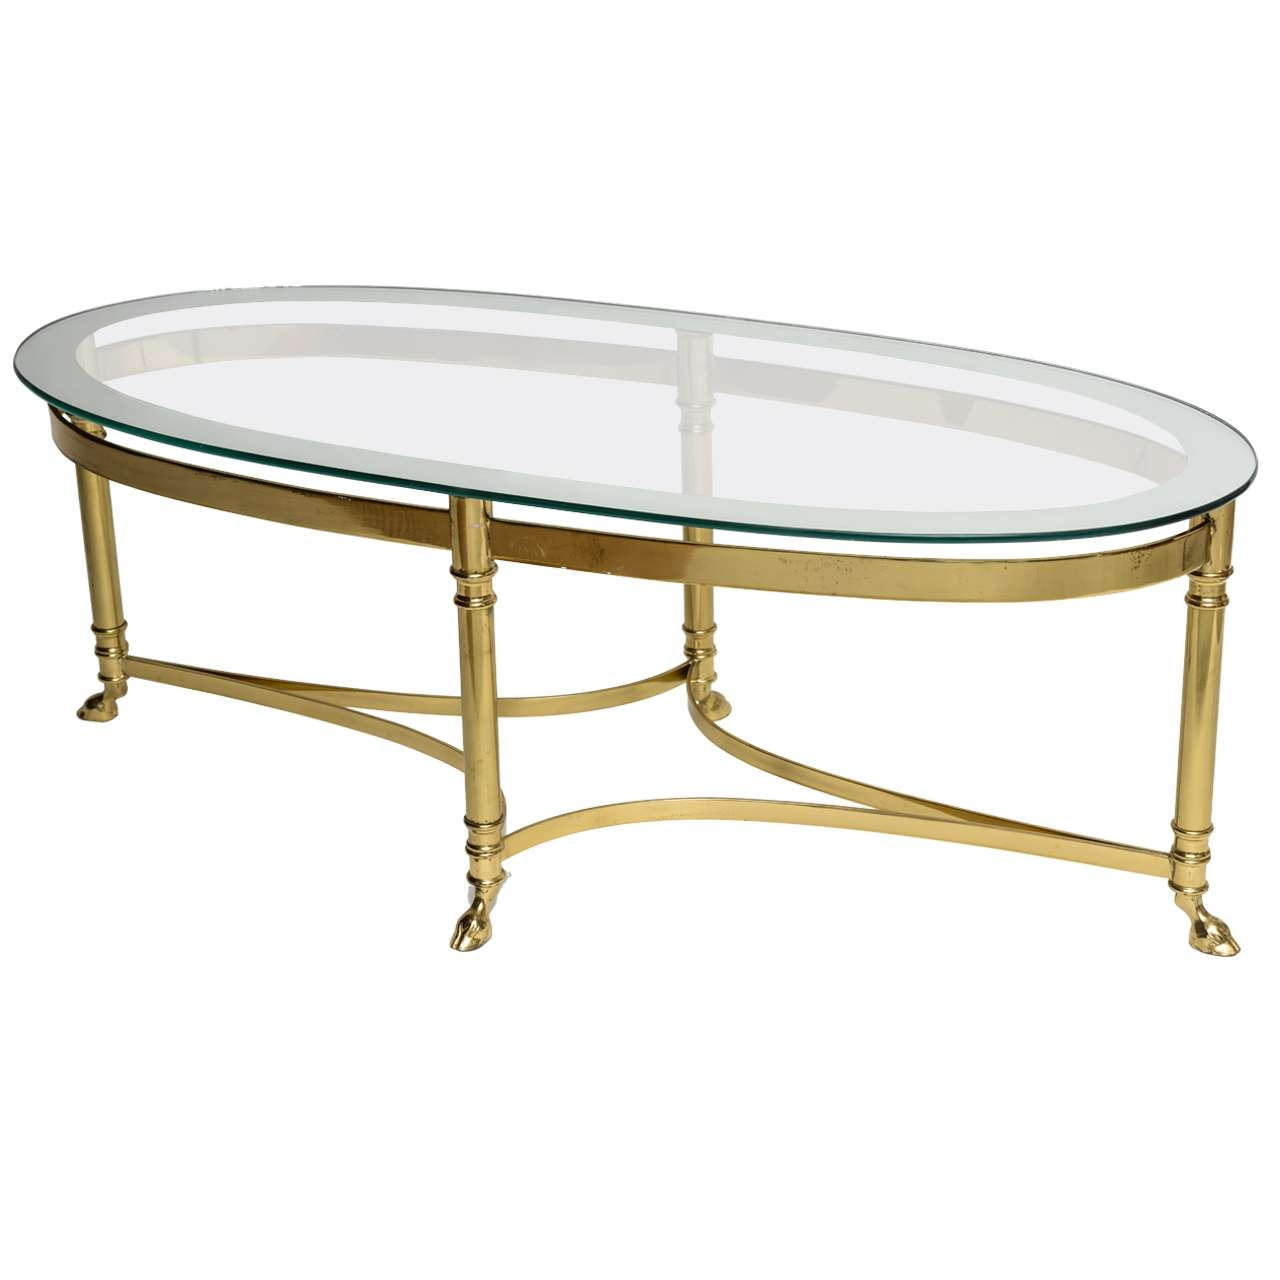 Fashionable Metal Oval Coffee Tables Intended For Coffee Table: Stunning Oval Glass Coffee Table Ideas Small Coffee (View 8 of 20)